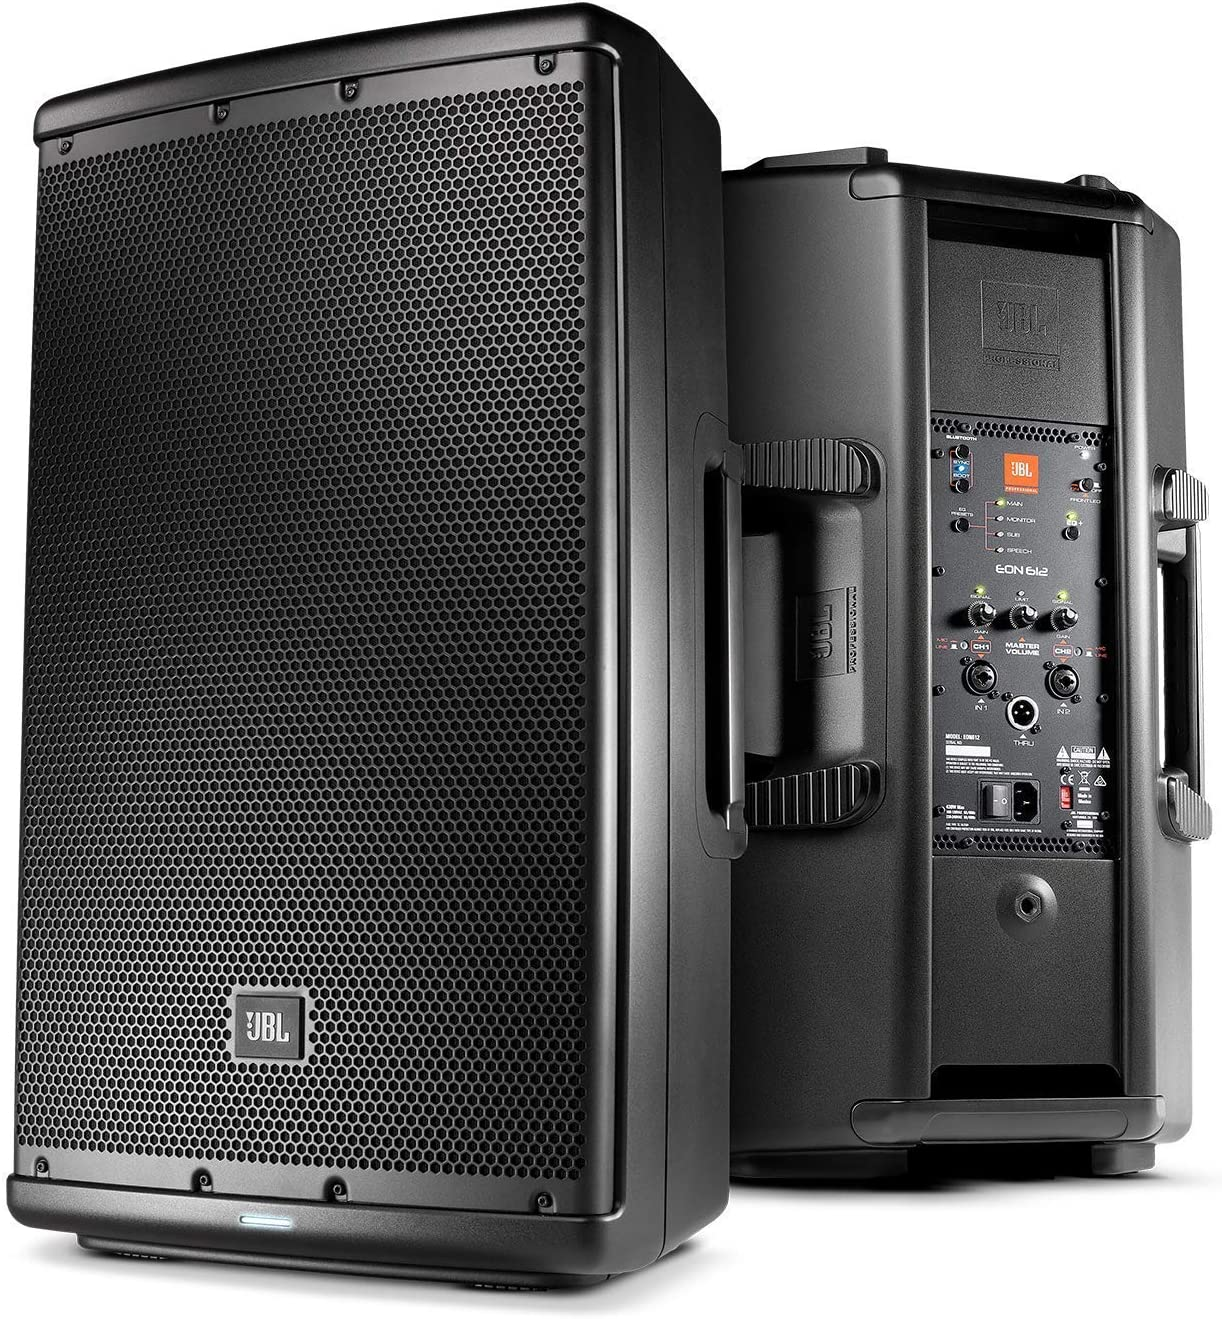 Cable Ties and 1-Year Warranty Renewed JBL Professional EON612 Portable 12 2-Way Multipurpose Self-Powered Sound Reinforcement Speaker with 10ft XLR